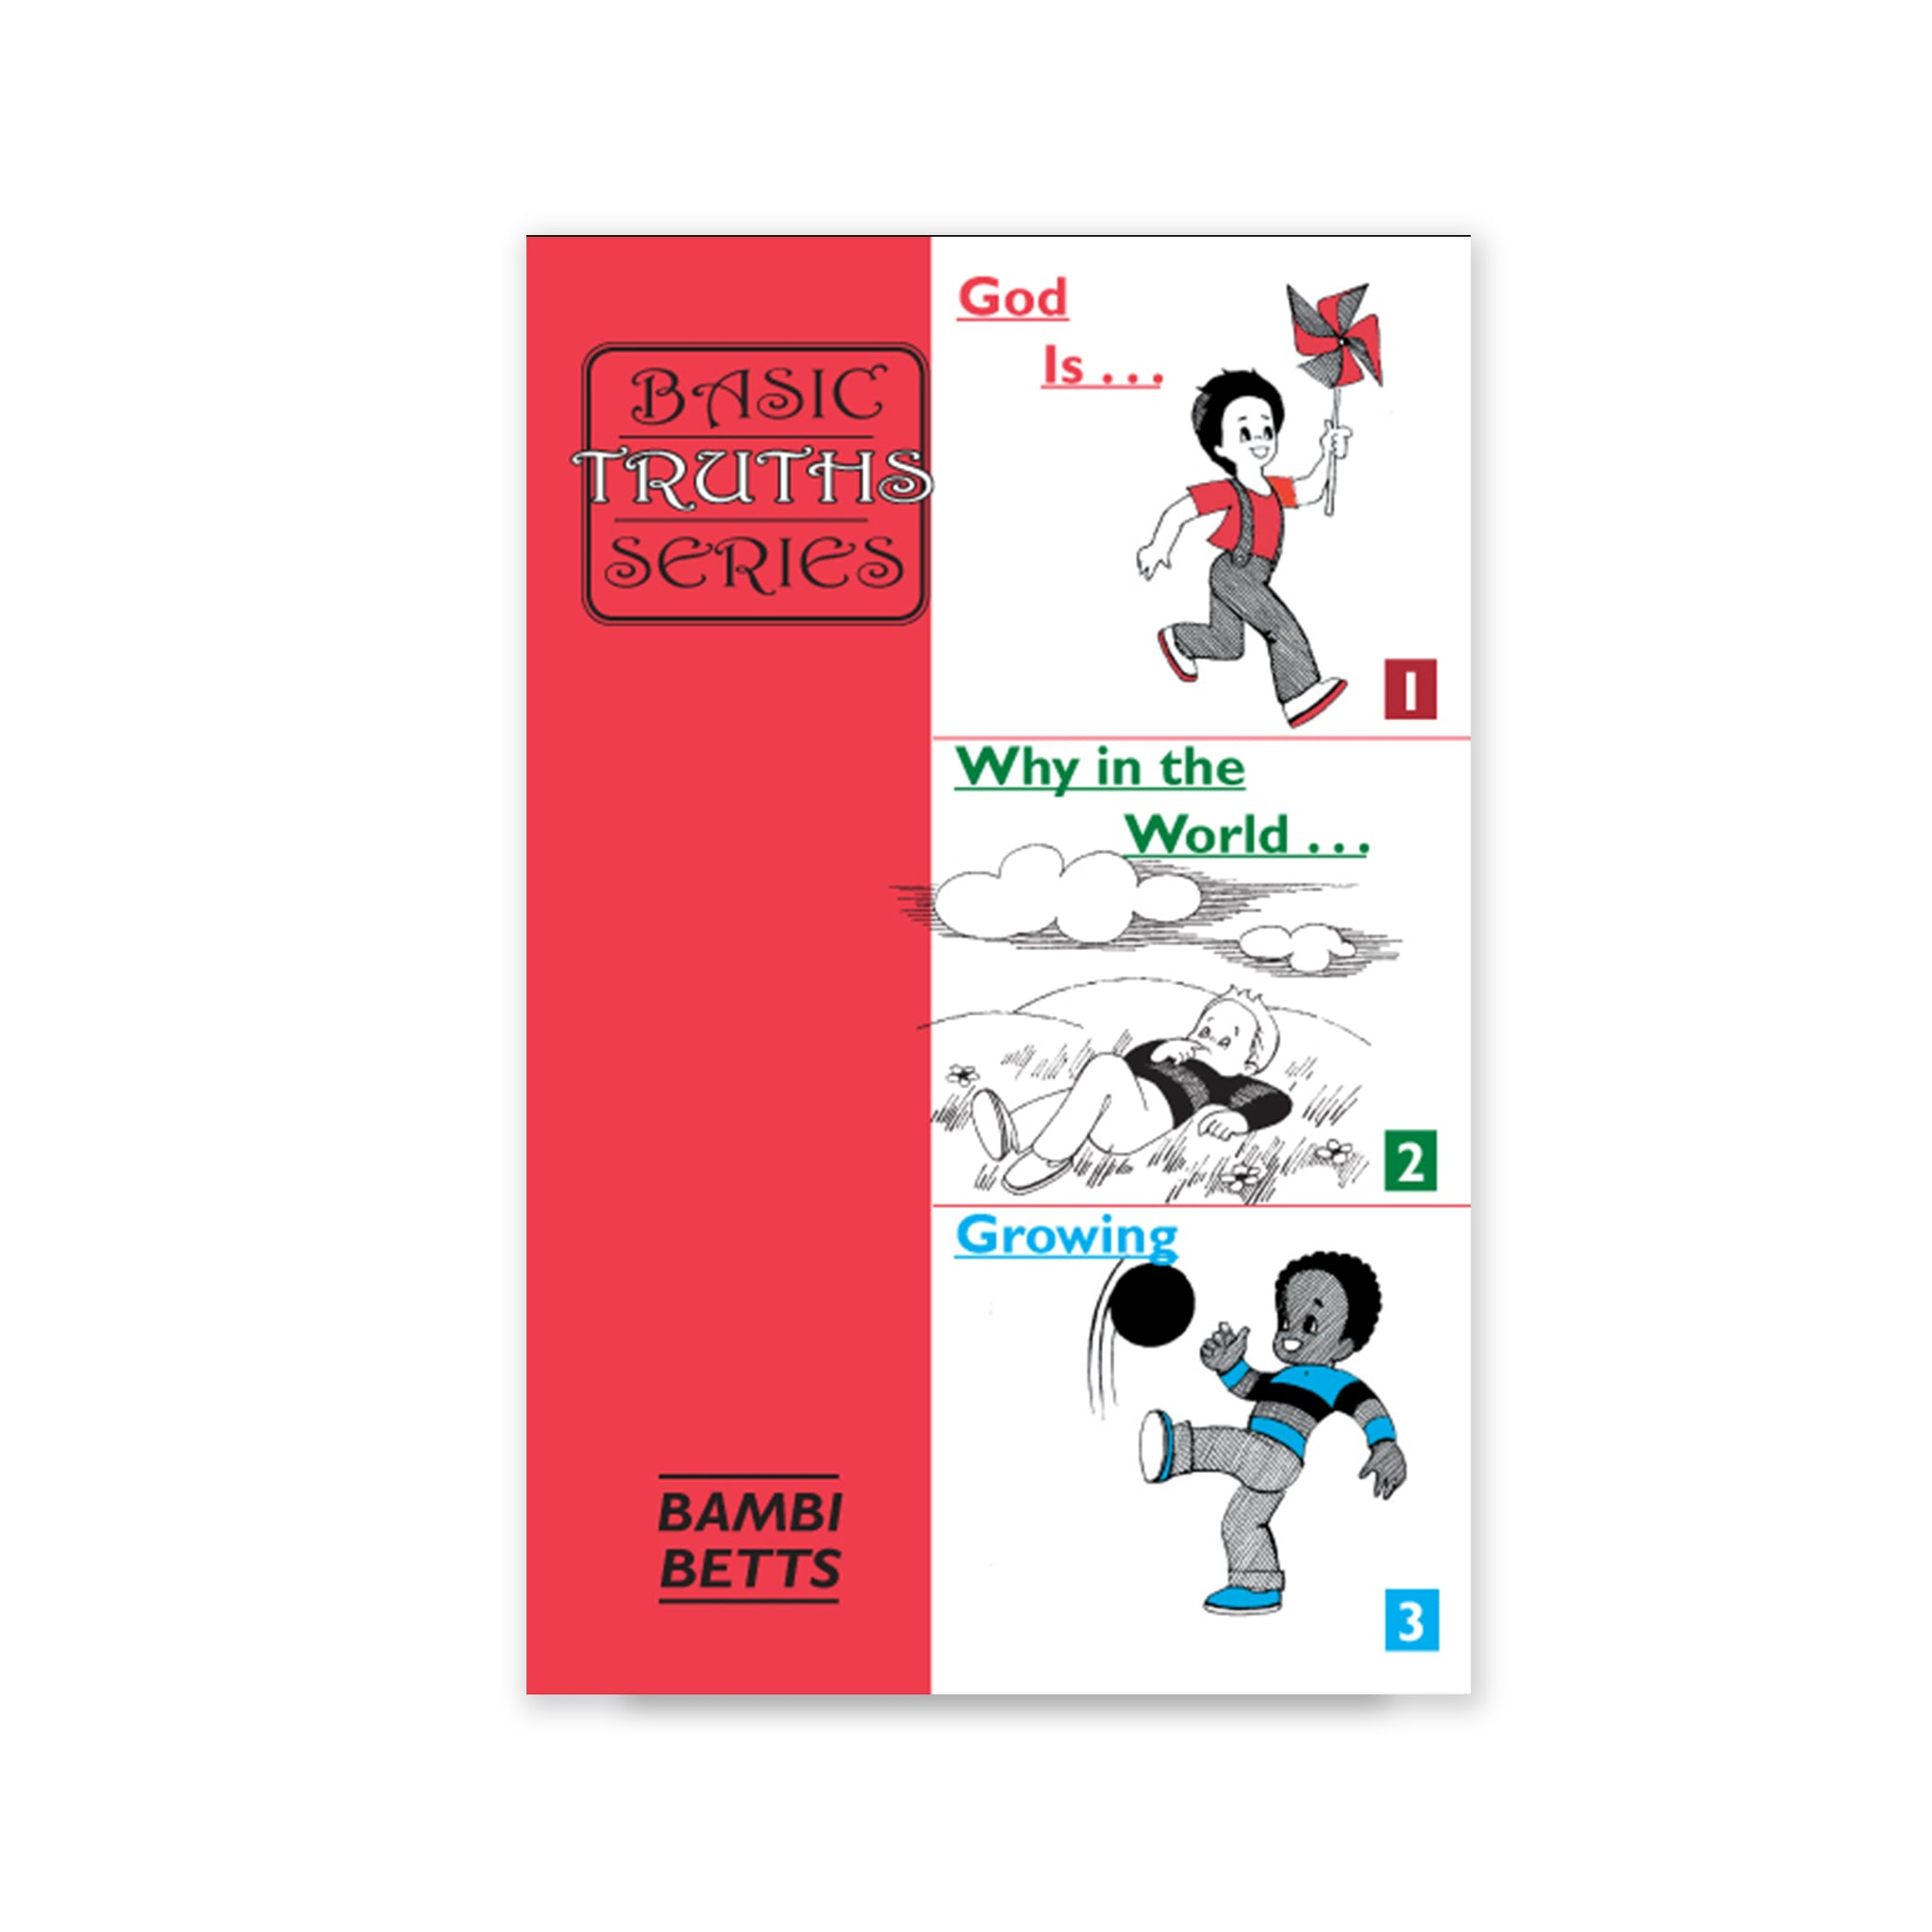 Basic Truths Series 1 - Simple Books for Young Children